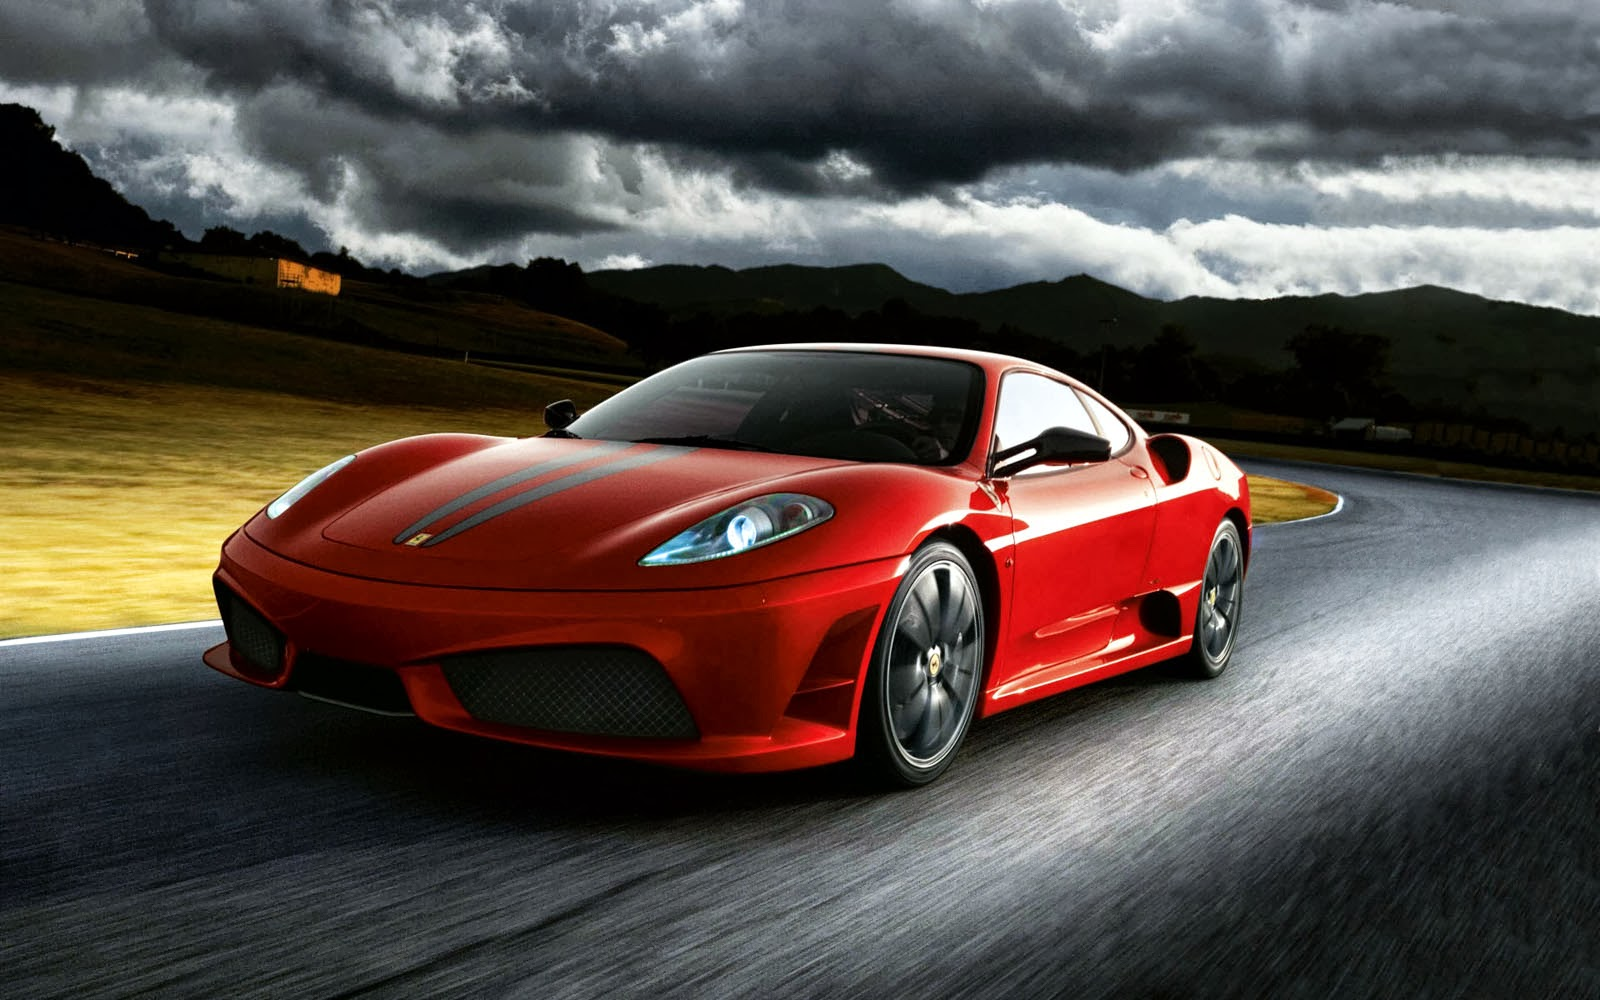 wallpapers ferrari f430 scuderia wallpapers. Black Bedroom Furniture Sets. Home Design Ideas